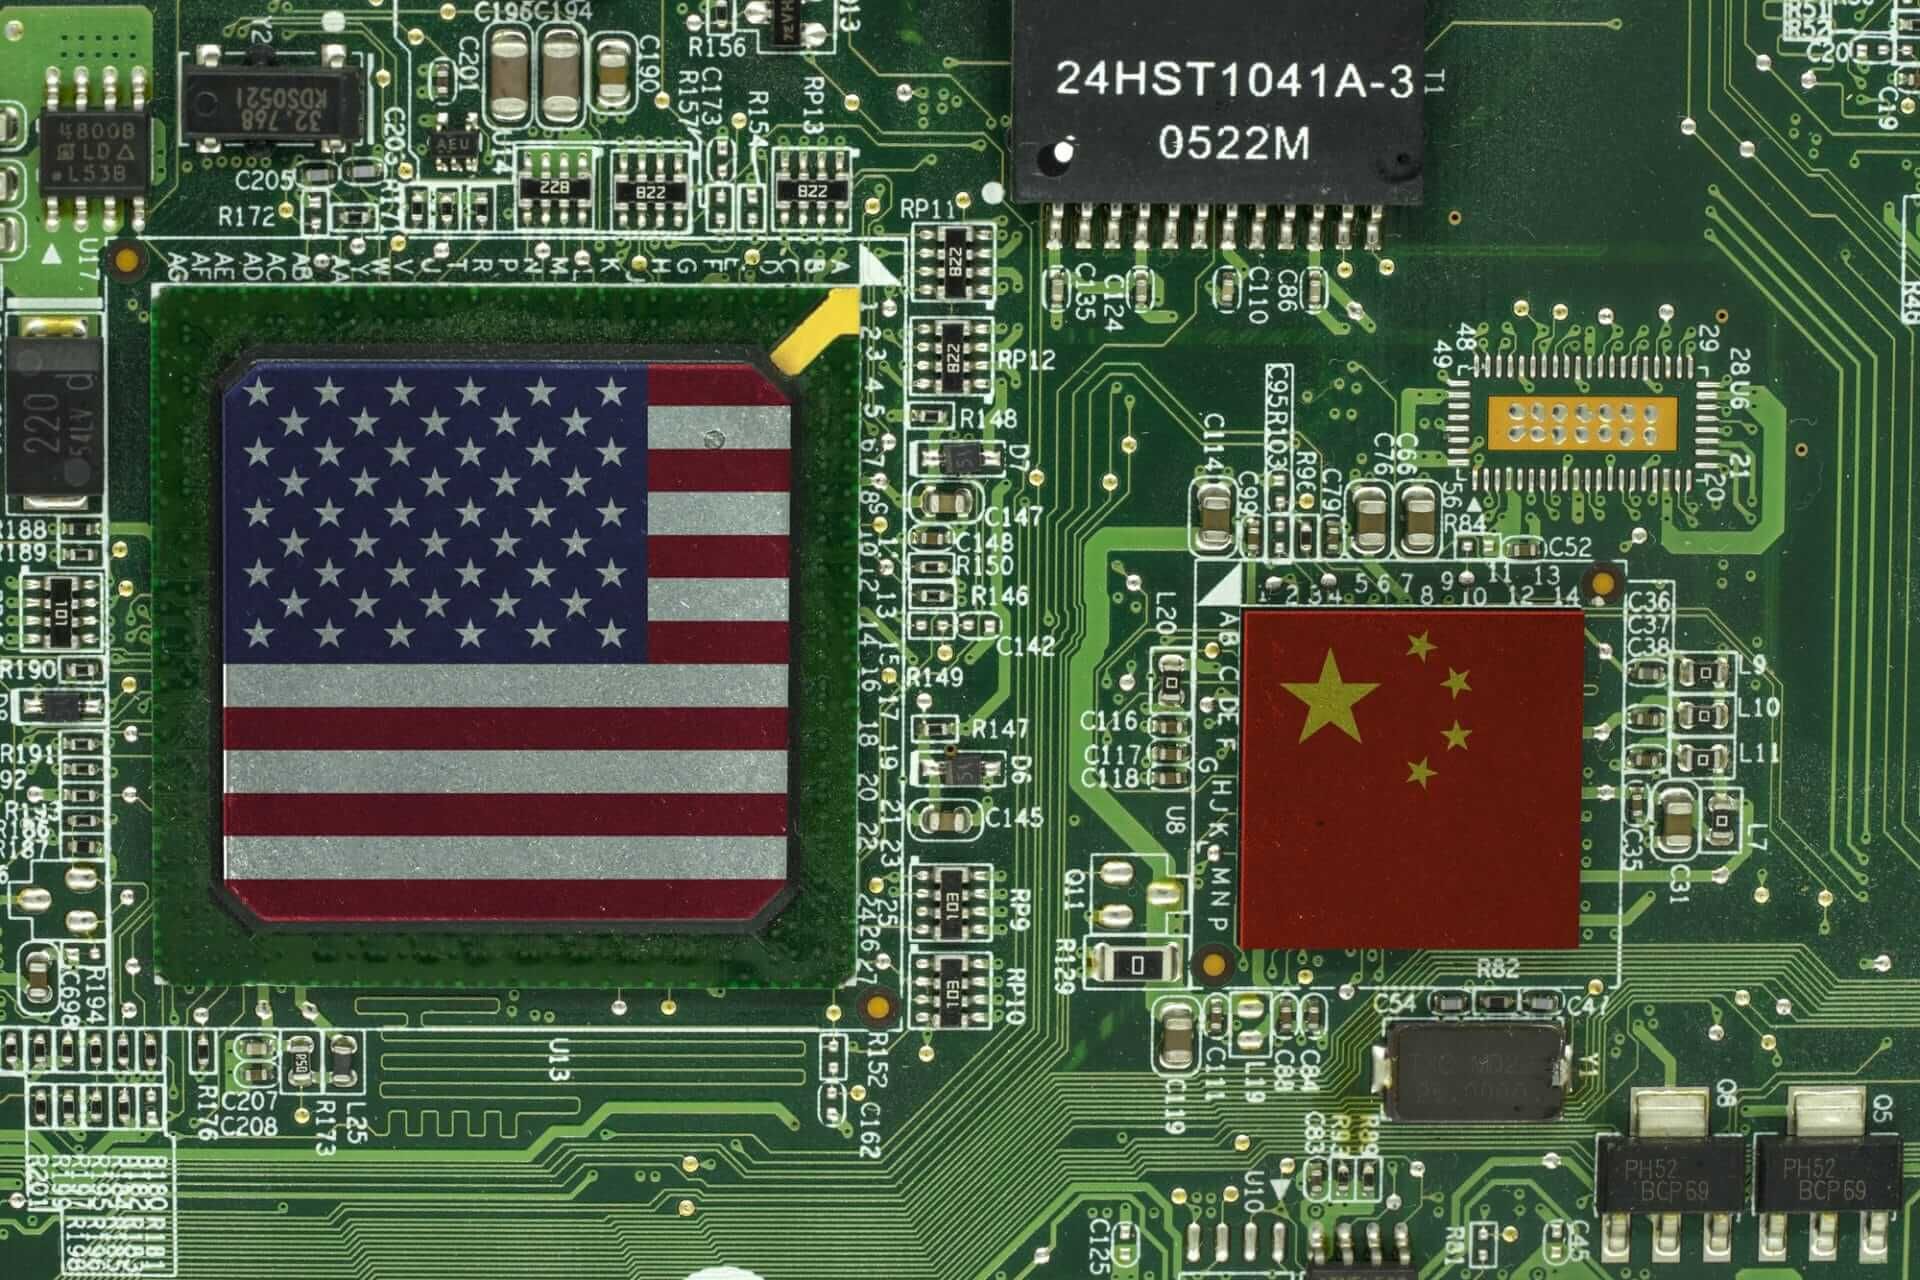 TSMC has halted new orders from Huawei in response to new US exportcontrols